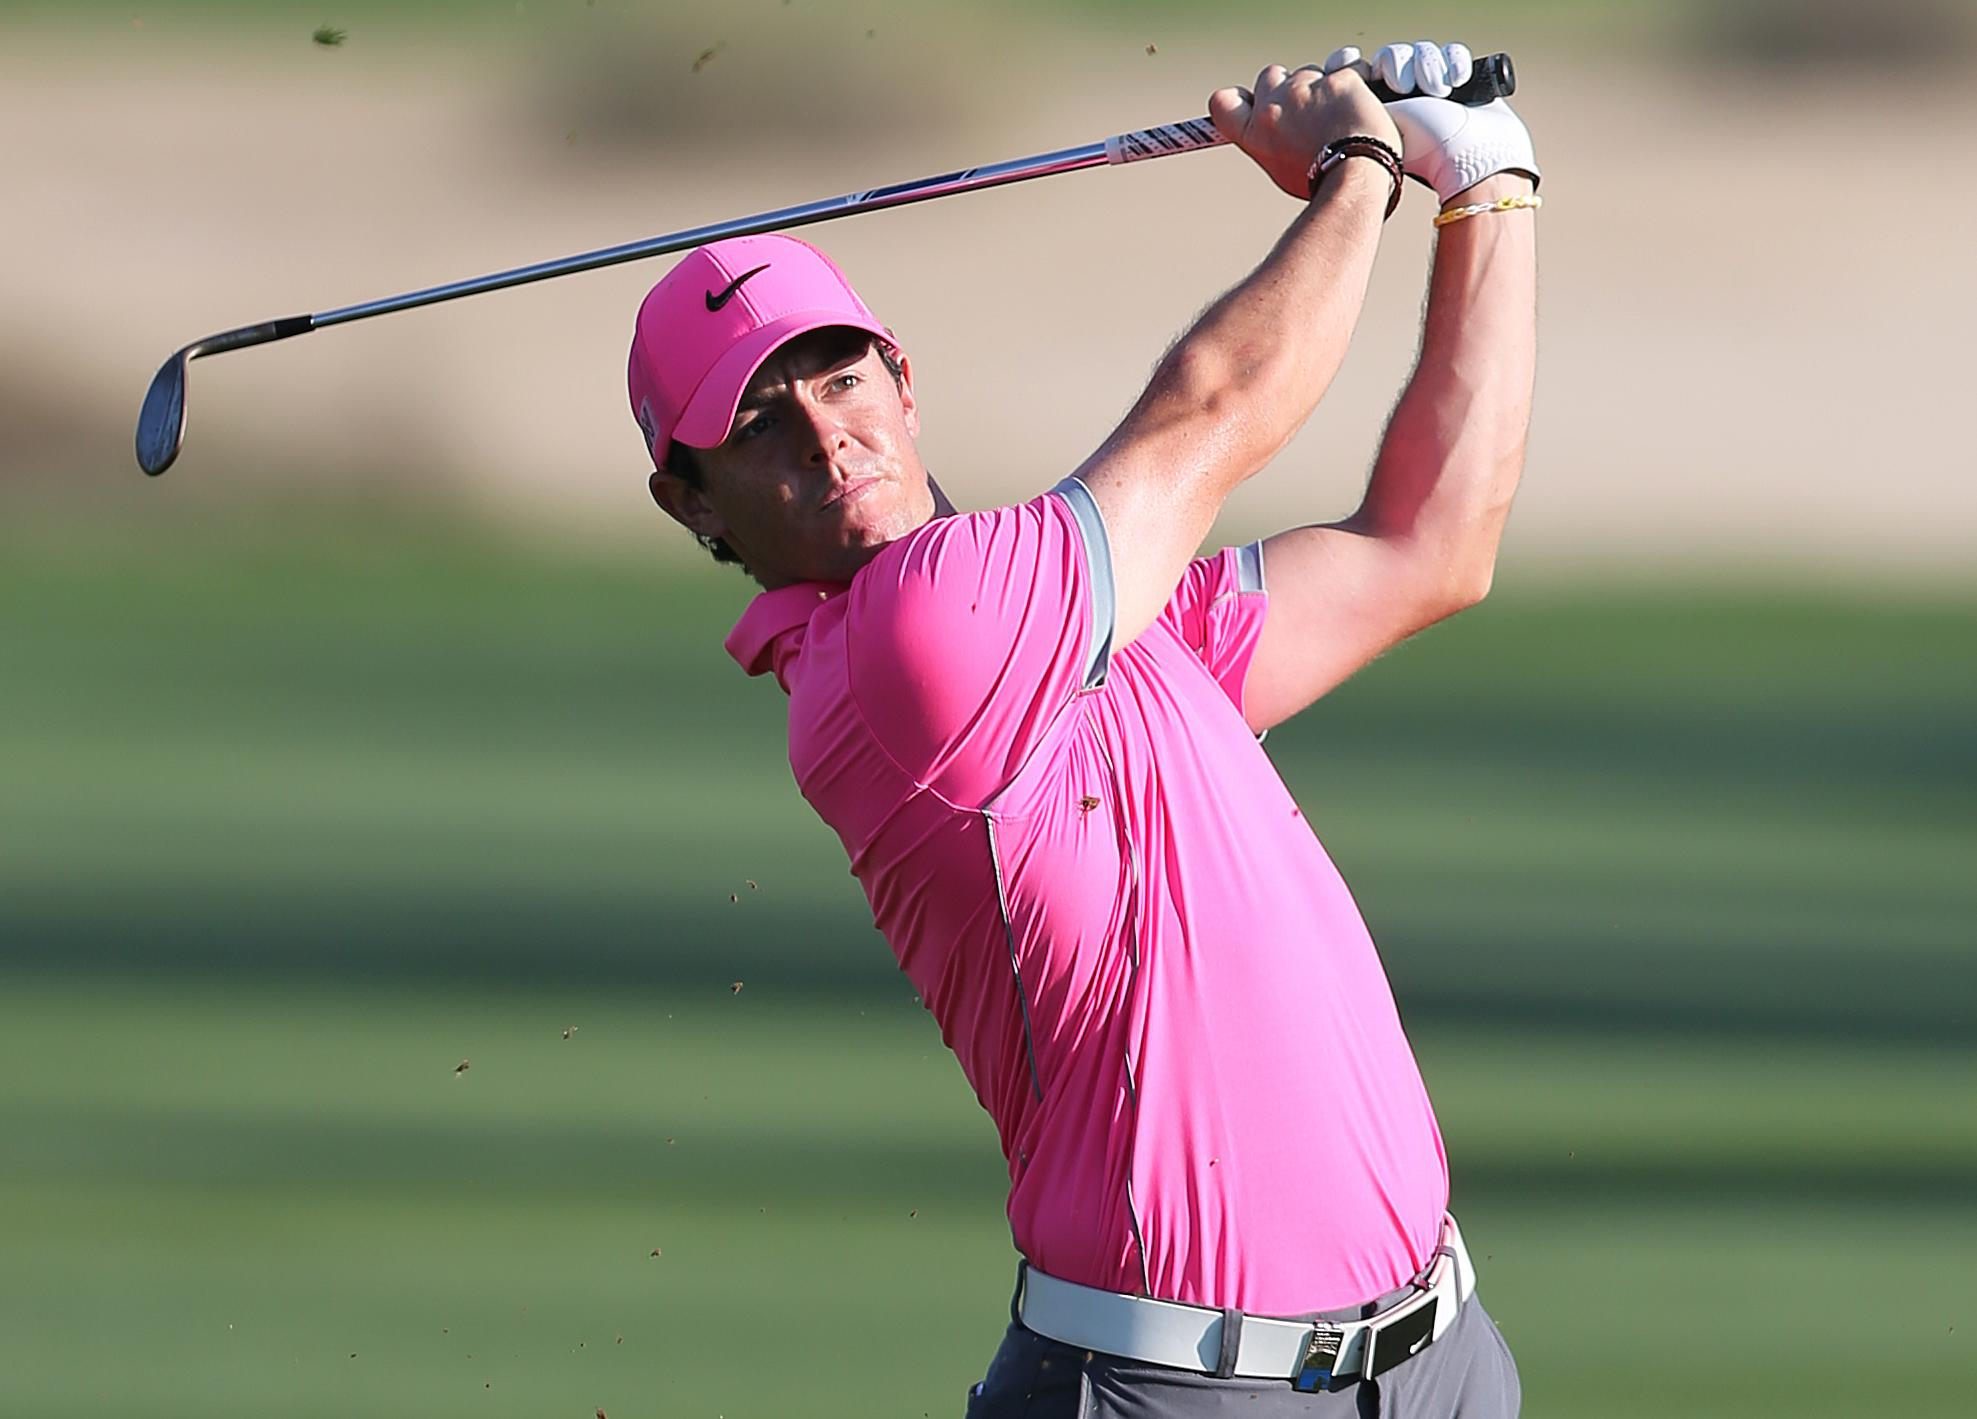 McIlroy surges to one-shot lead in Dubai Desert Classic